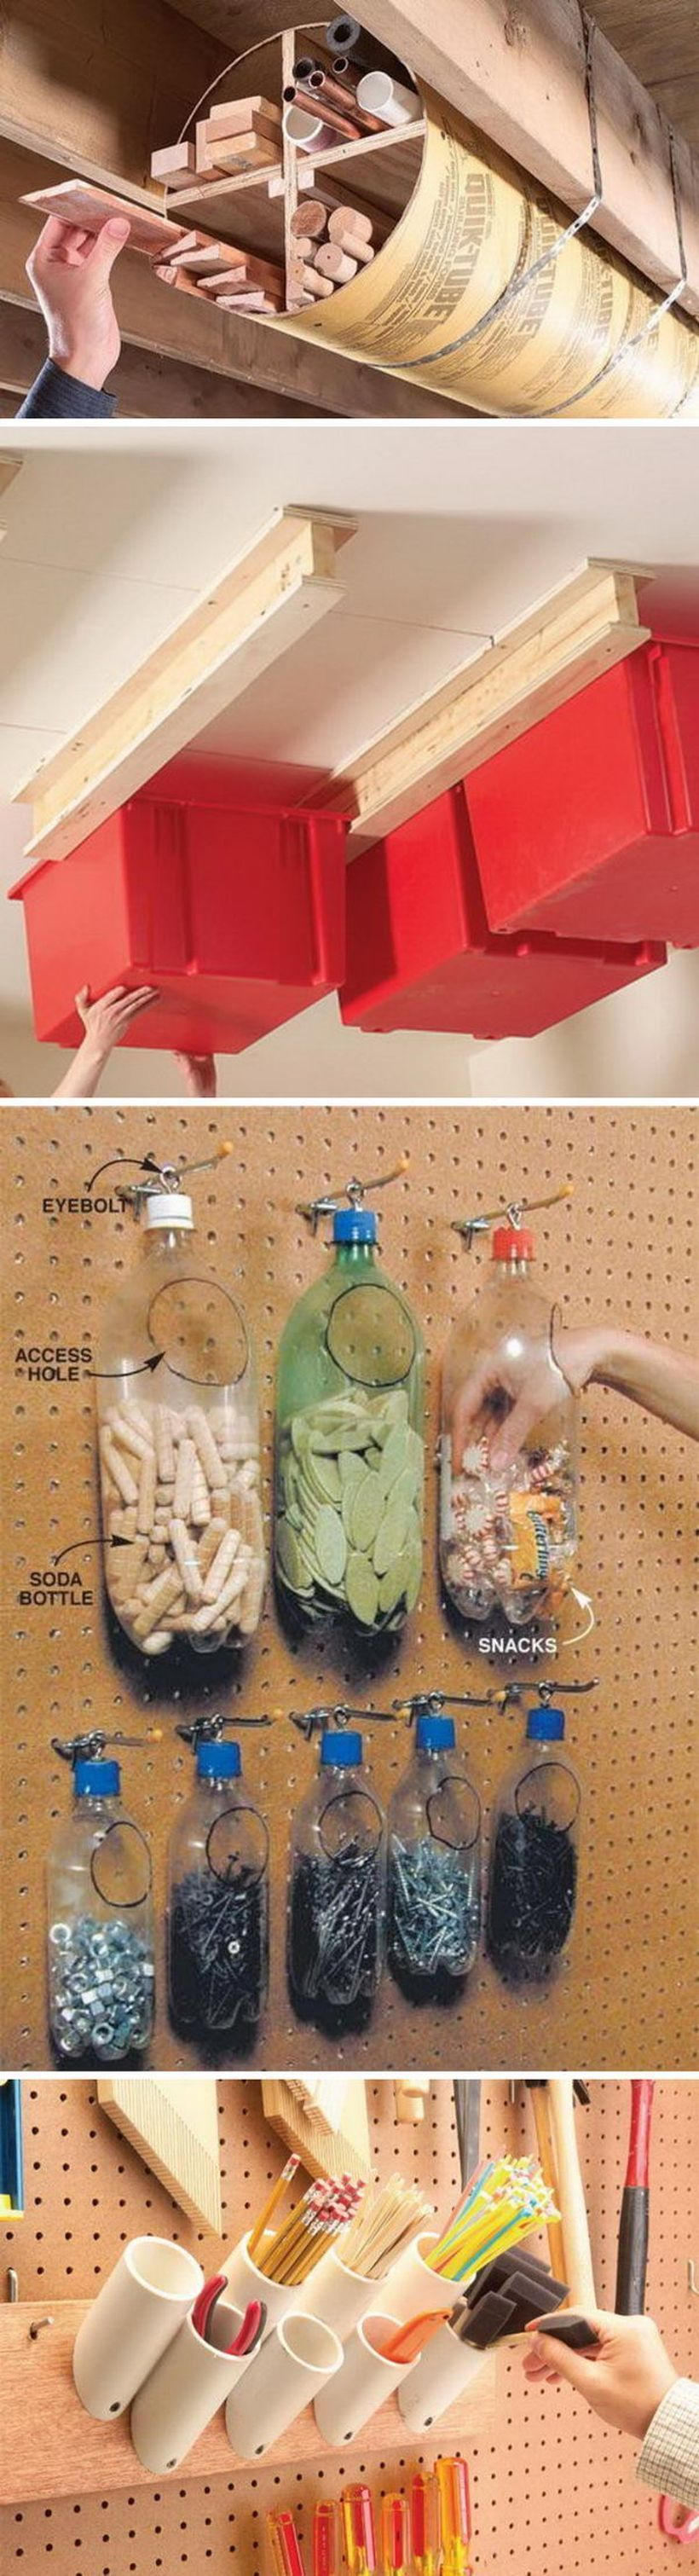 Creative hacks tips for garage storage and organizations